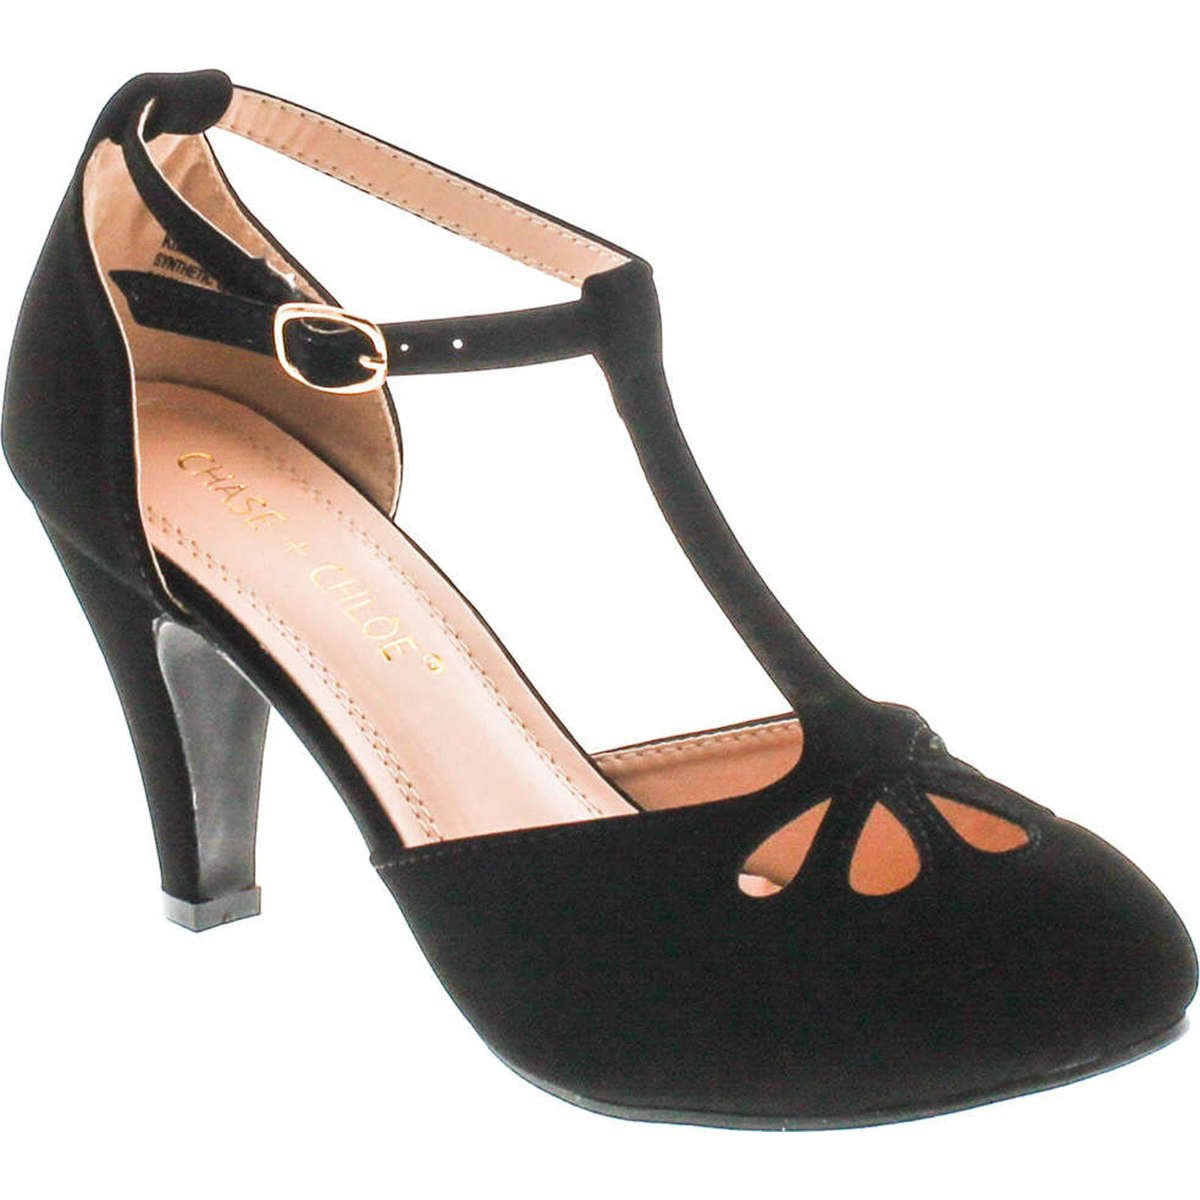 Chase & Chloe Kimmy-36 Women's Teardrop Cut Out T-Strap Mid Heel Dress Pumps,Black Nubuck,11